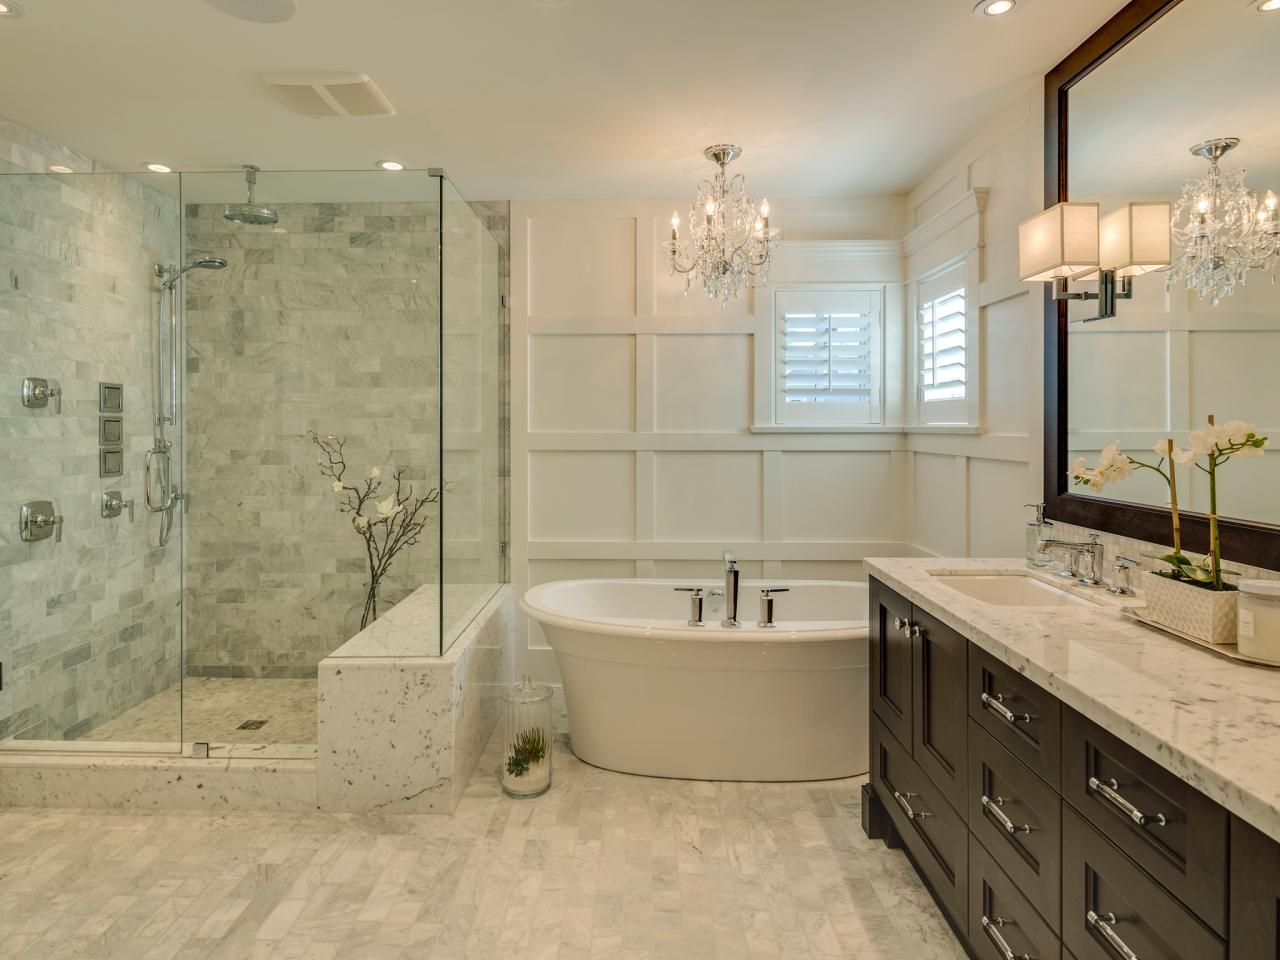 Economic Bathroom Designs Splurge Or Save 16 Gorgeous Bath Updates For Any Budget  Budget